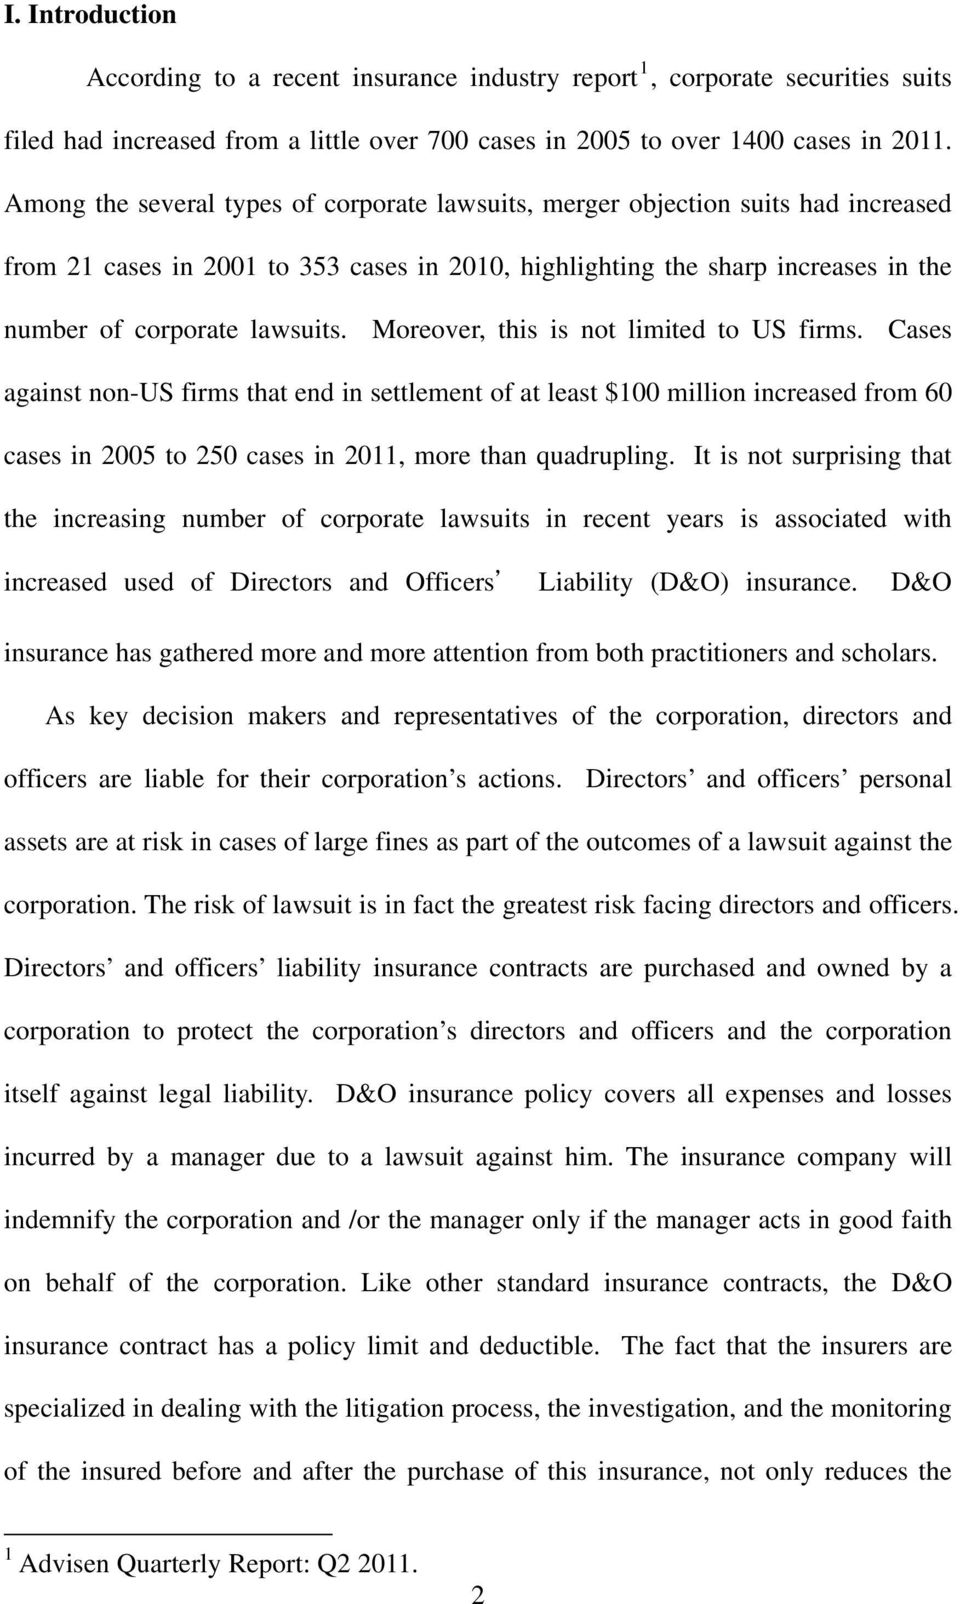 Moreover, this is not limited to US firms. Cases against non-us firms that end in settlement of at least $100 million increased from 60 cases in 2005 to 250 cases in 2011, more than quadrupling.